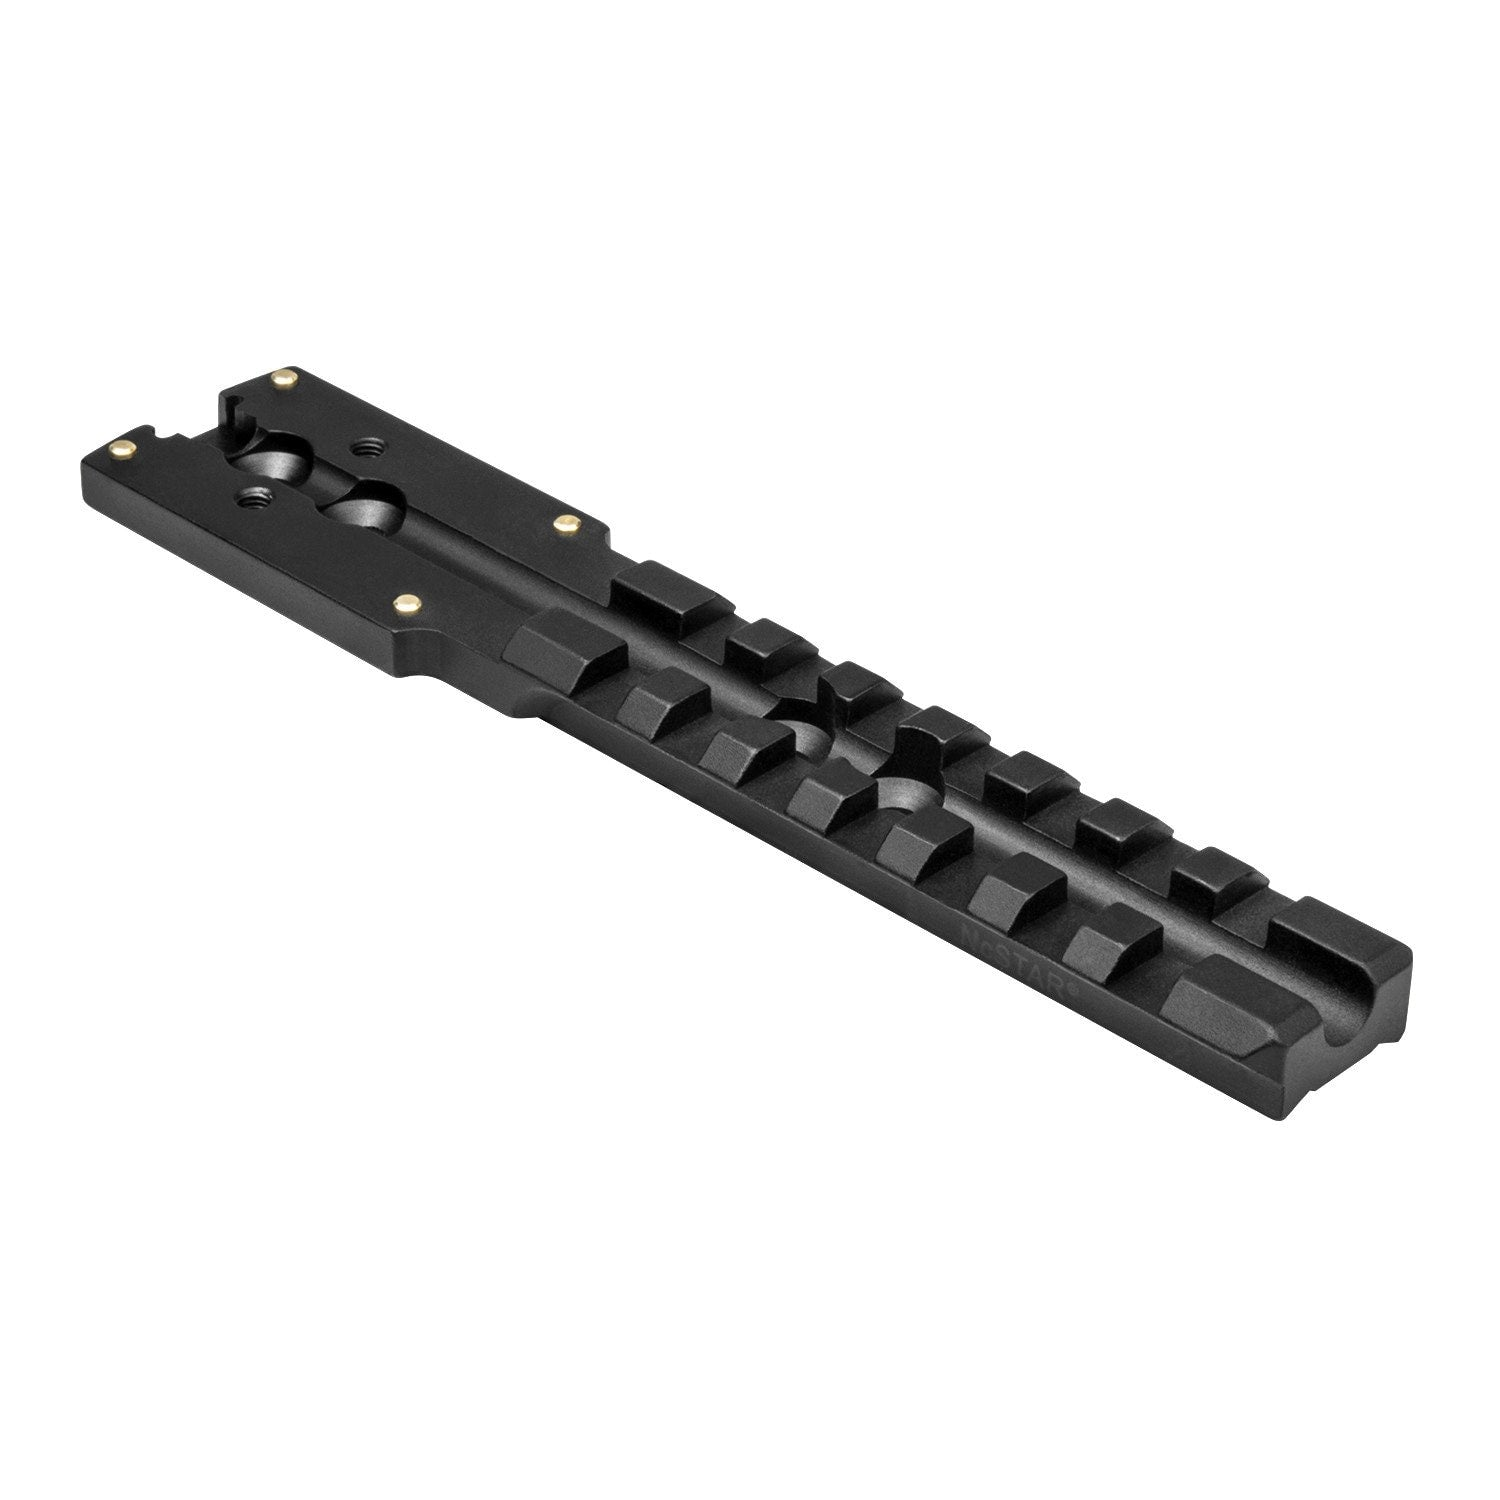 Mossberg 500/590 Receiver Micro Dot Rail - Mounting Systems - Ncstar - Colonel Mustard